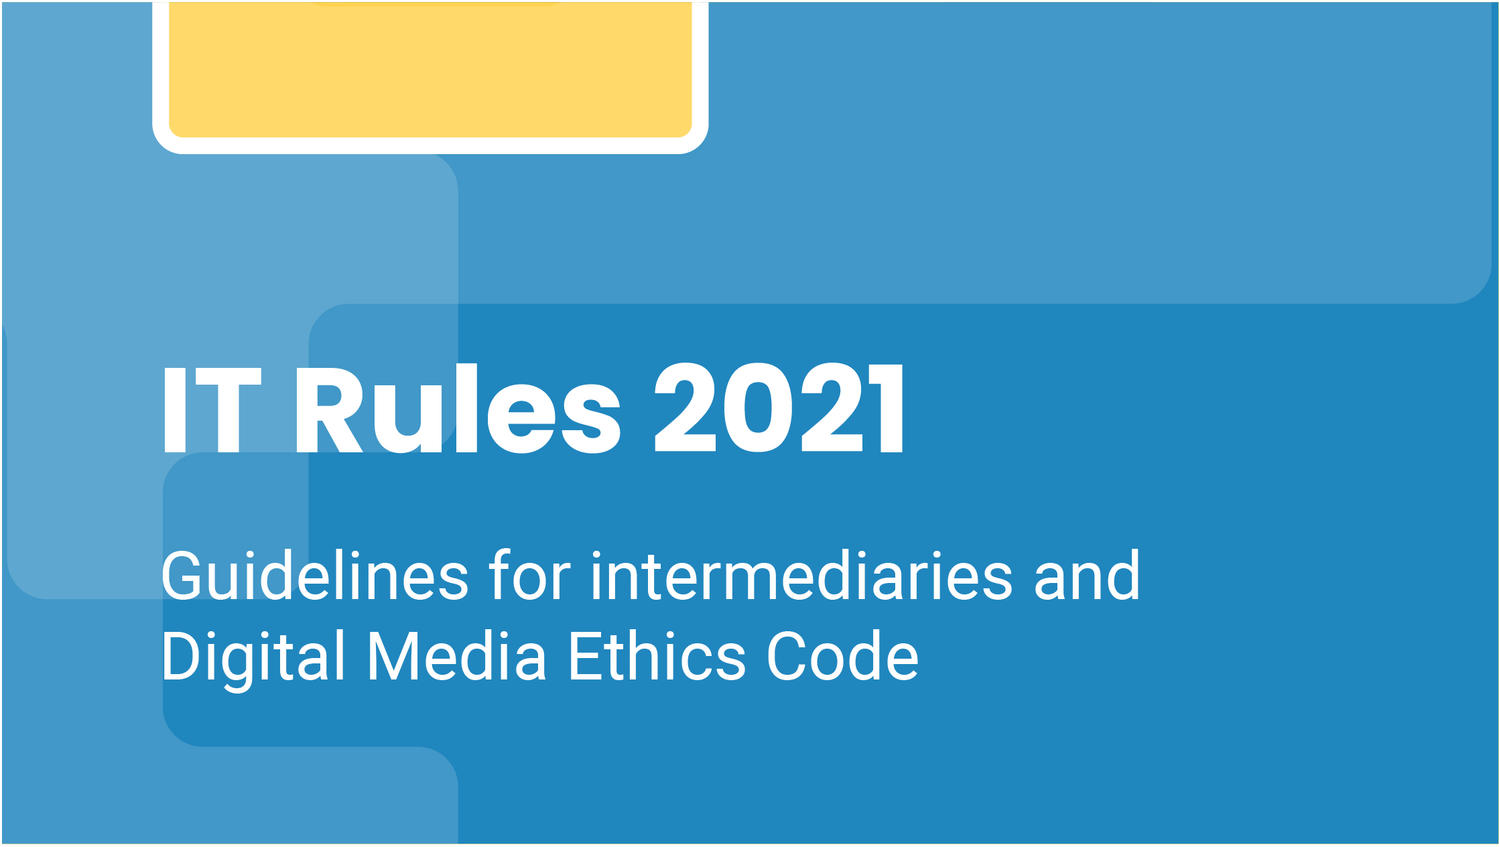 Information Technology - Guidelines For Intermediaries and Digital Media Ethics Code - Rules, 2021